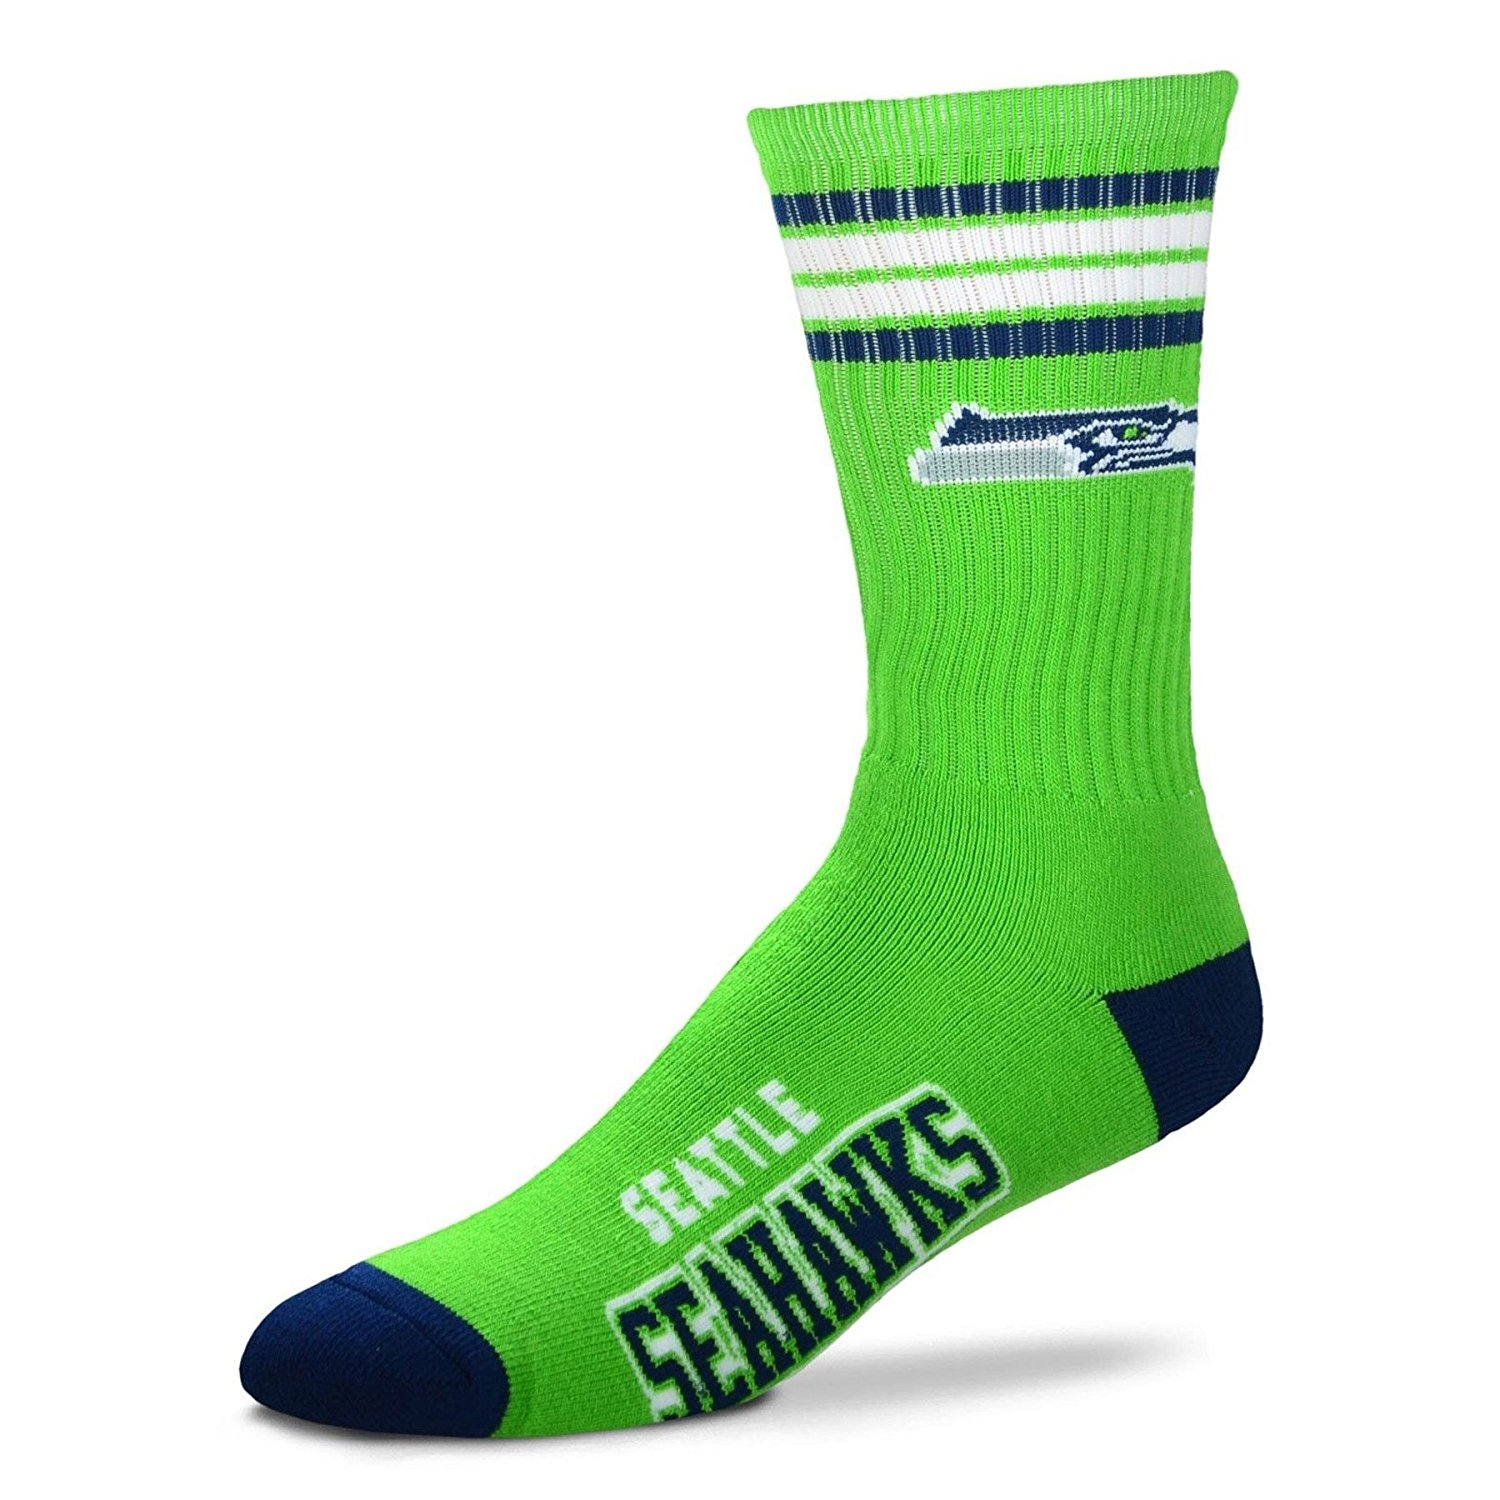 NFL 4 Stripe Deuce Crew Socks-New England Patriots-Medium, Made From: 83% Acrylic 14% Polyester 2% Rubber By For Bare Feet